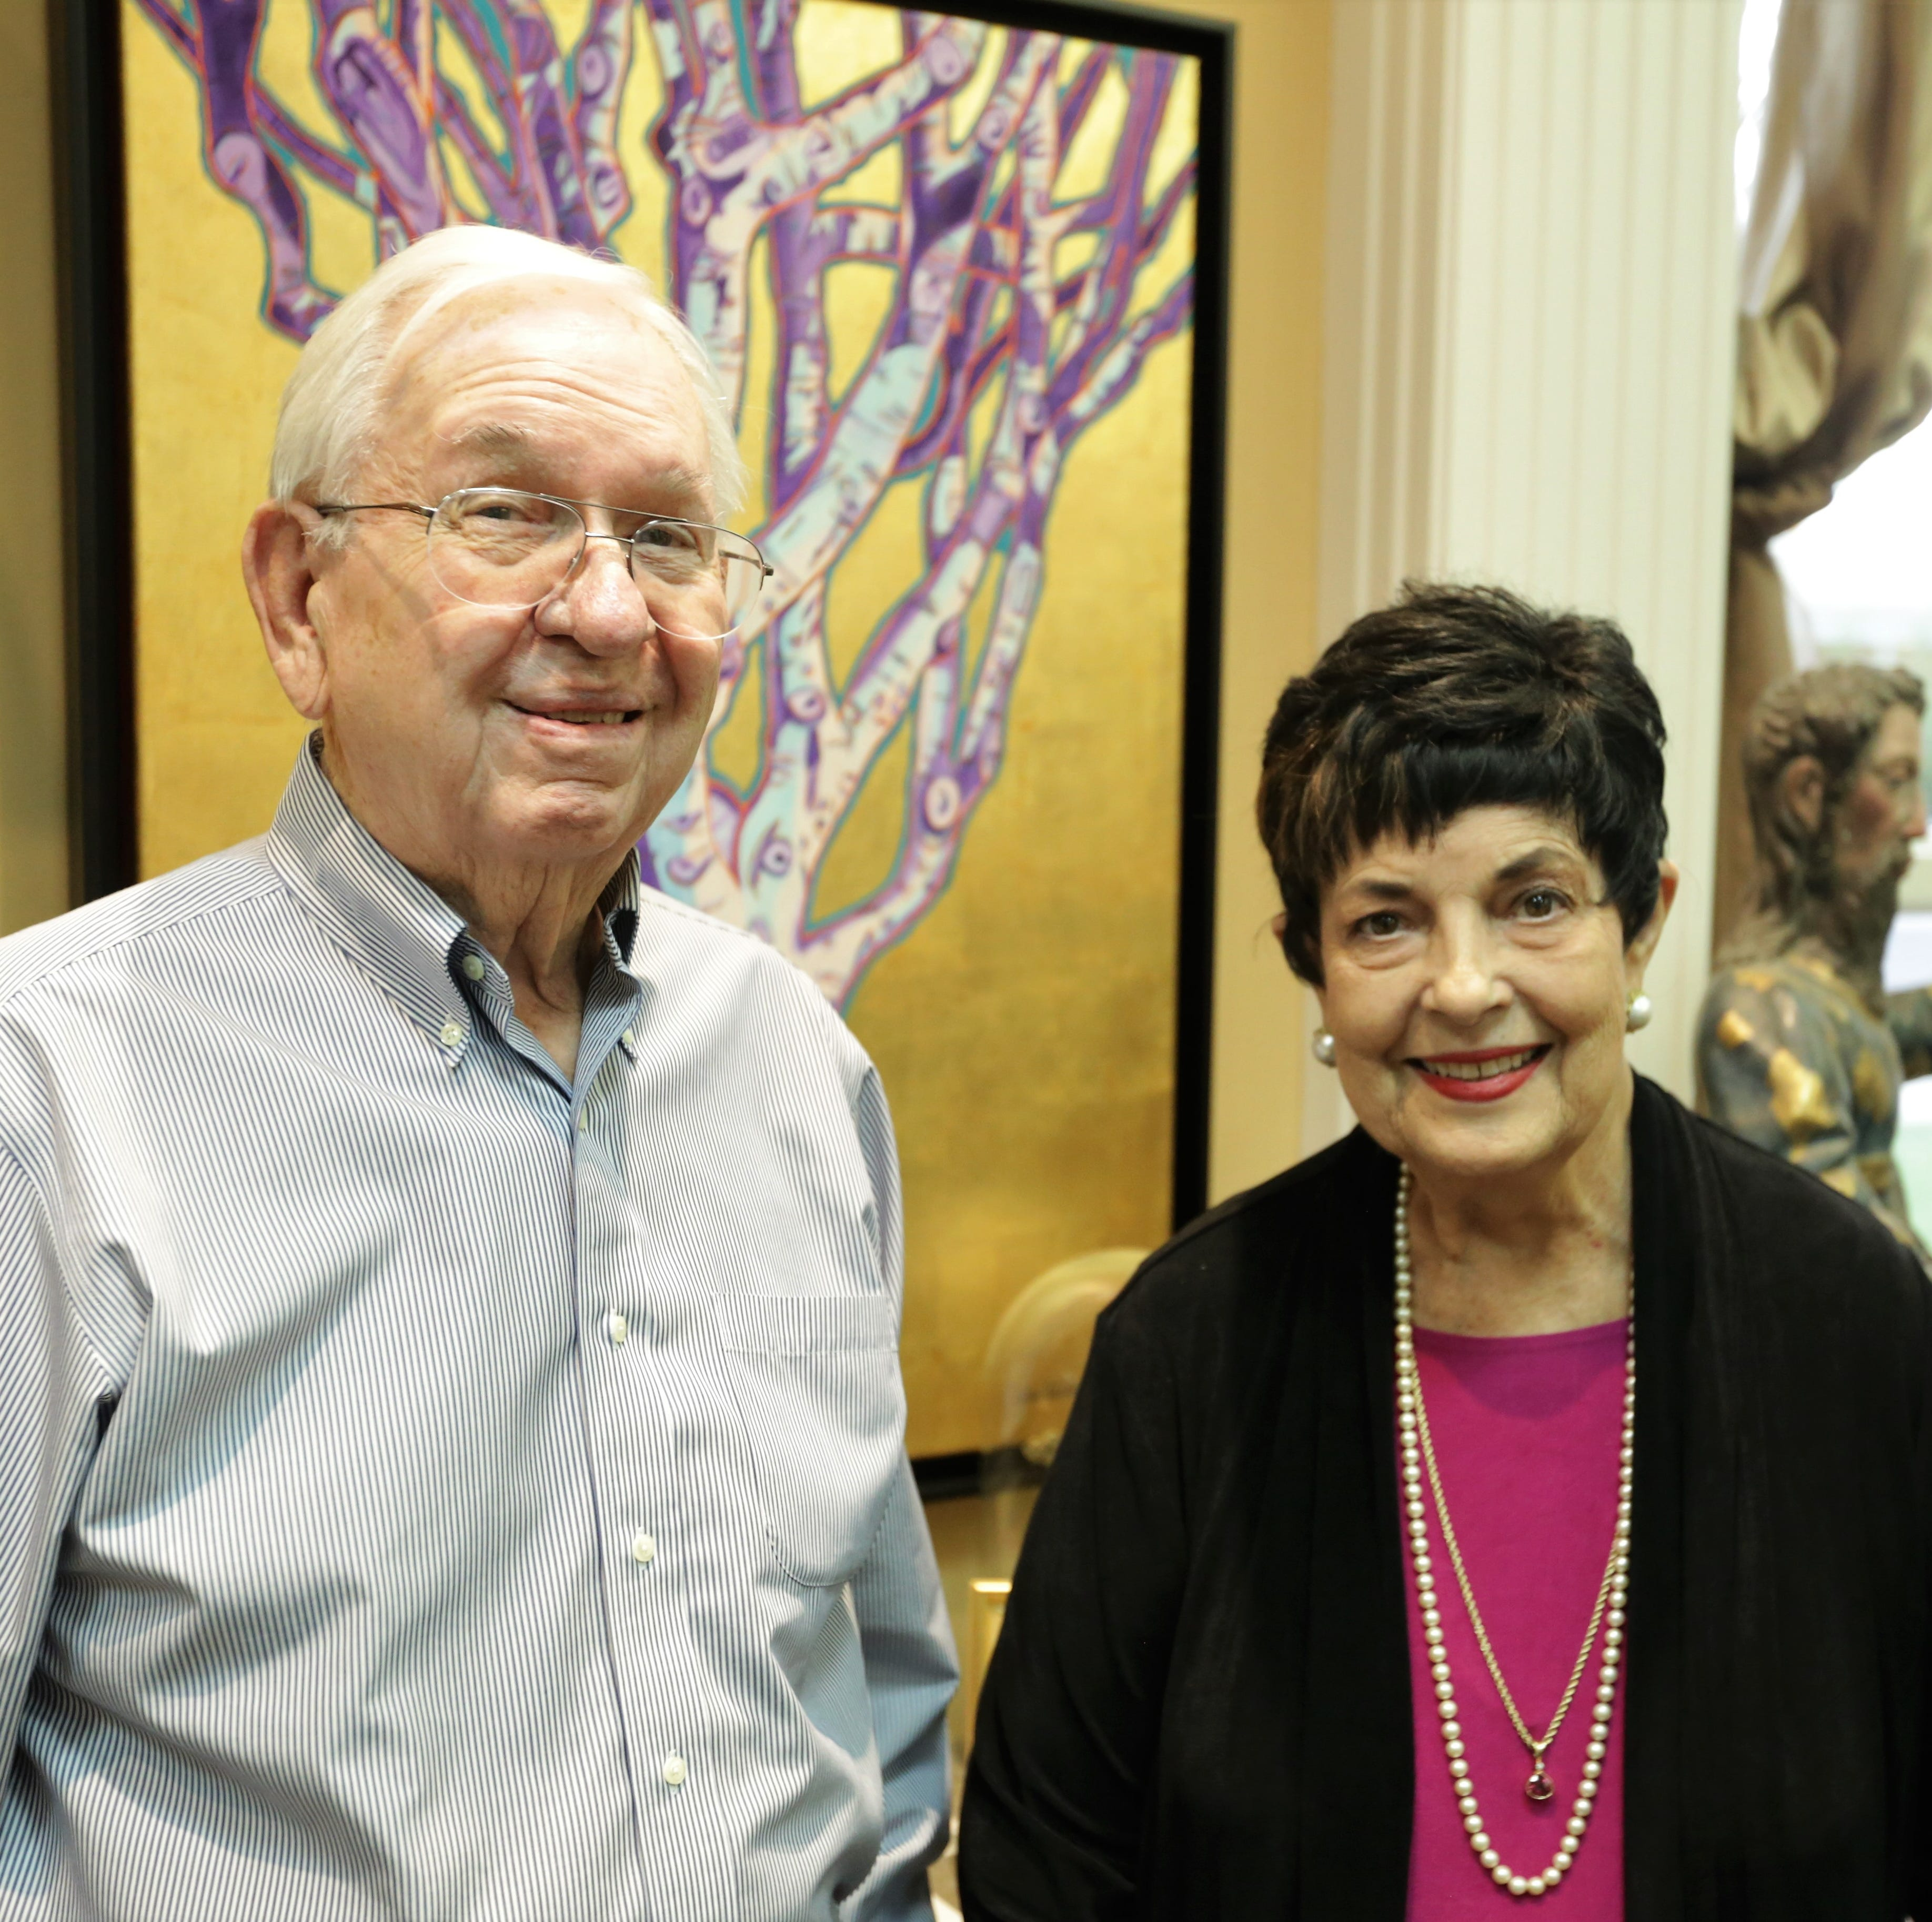 Cutter Gallery shutting its doors after 45 years in Las Cruces